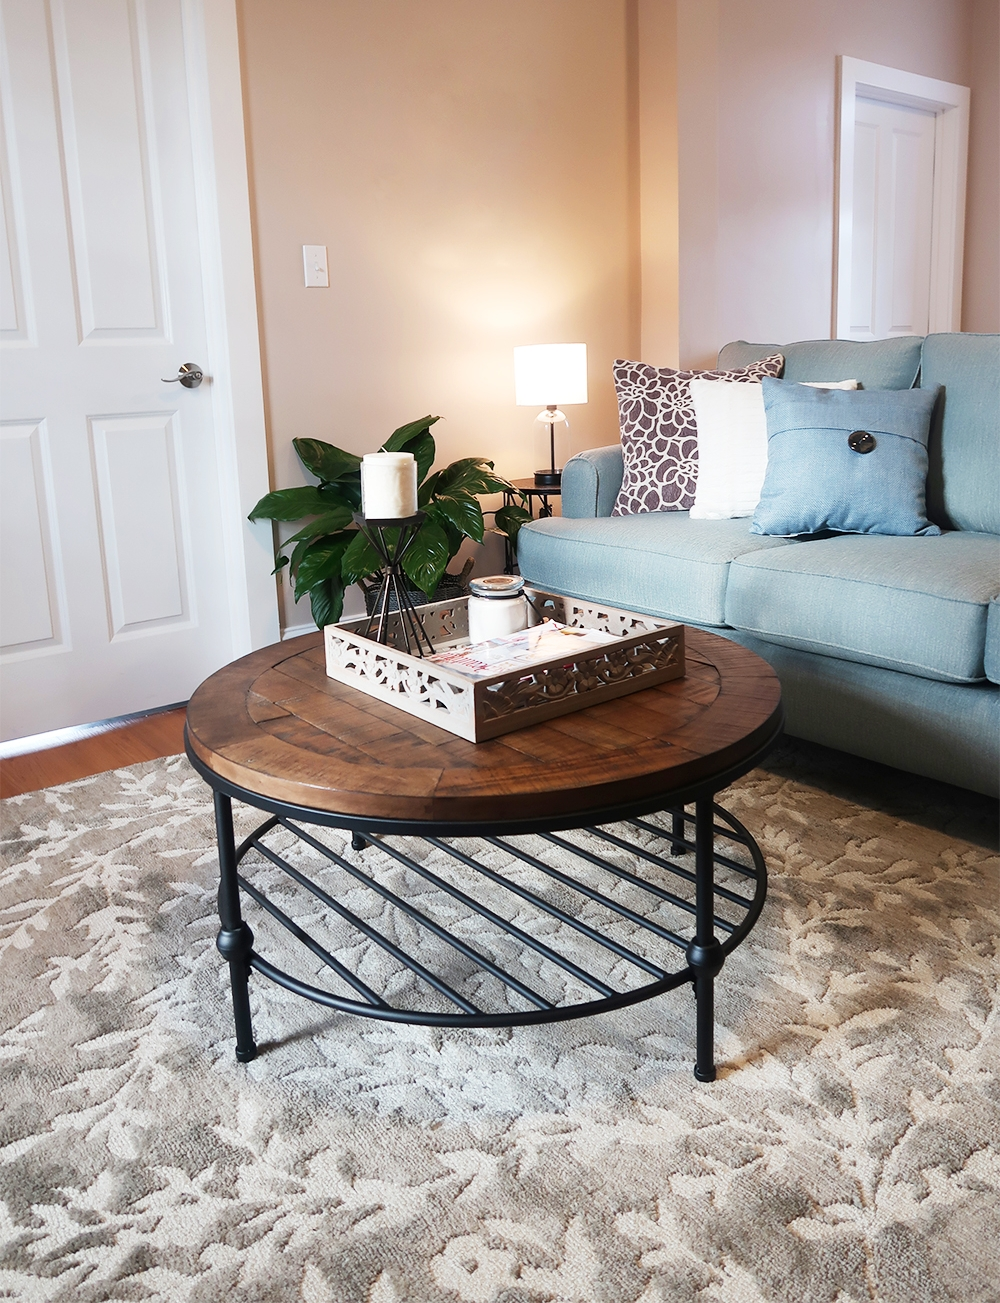 How To Decorate And Layout Furniture In A Small Open Concept Apartment Weekend Craft